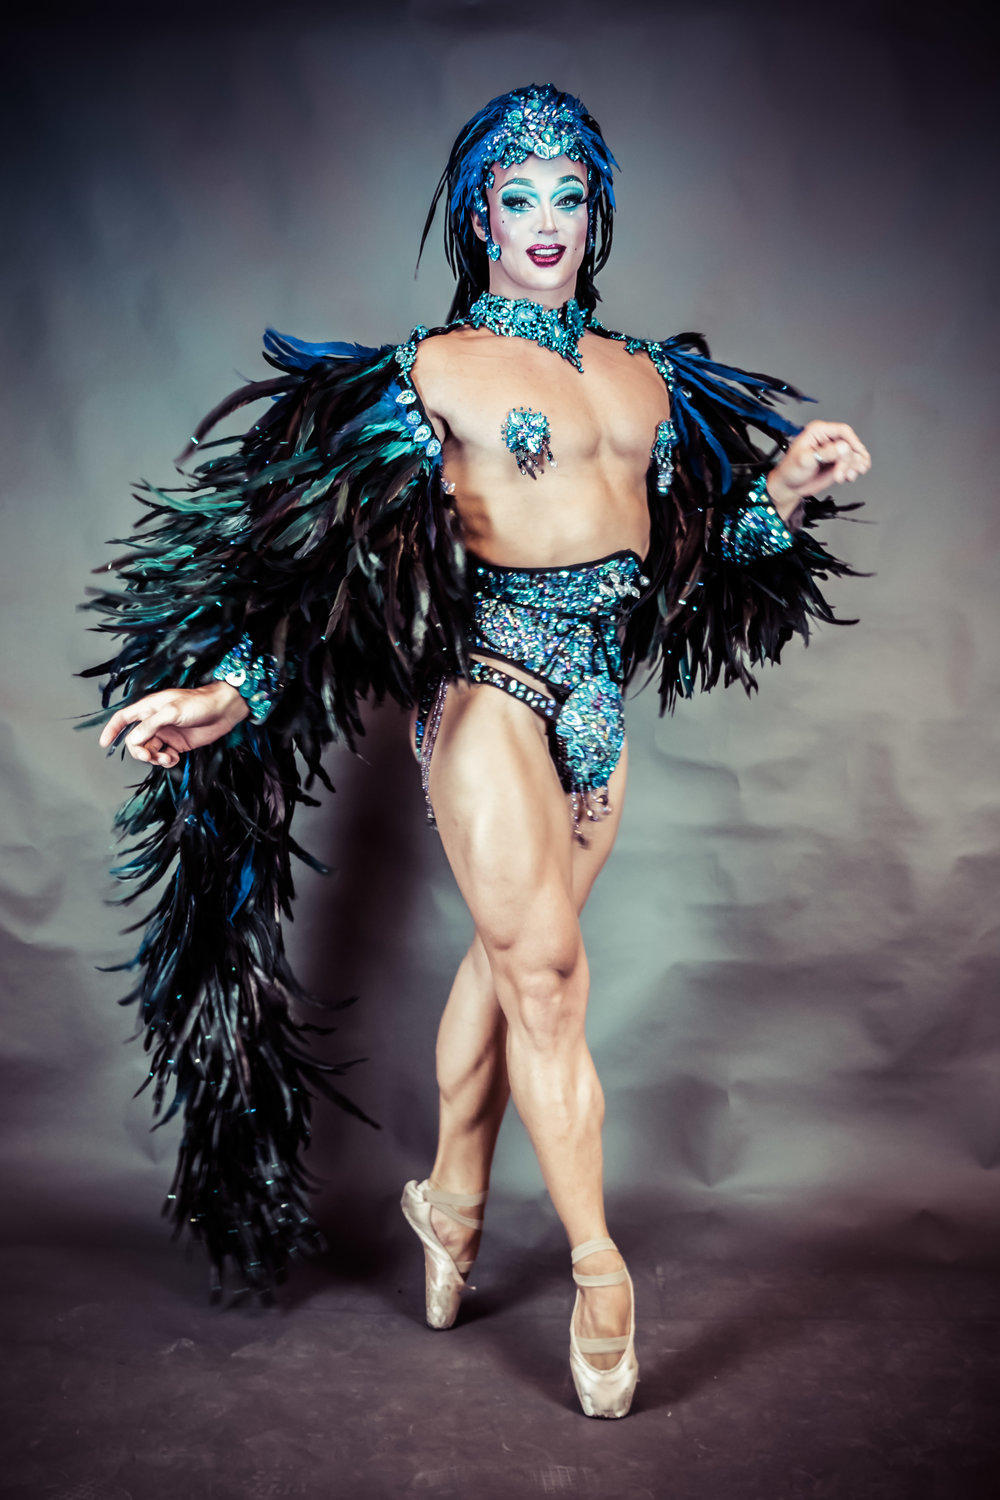 WINNER Swiss Crown of Burlesque 2018 - Chris Oh! New Zealand